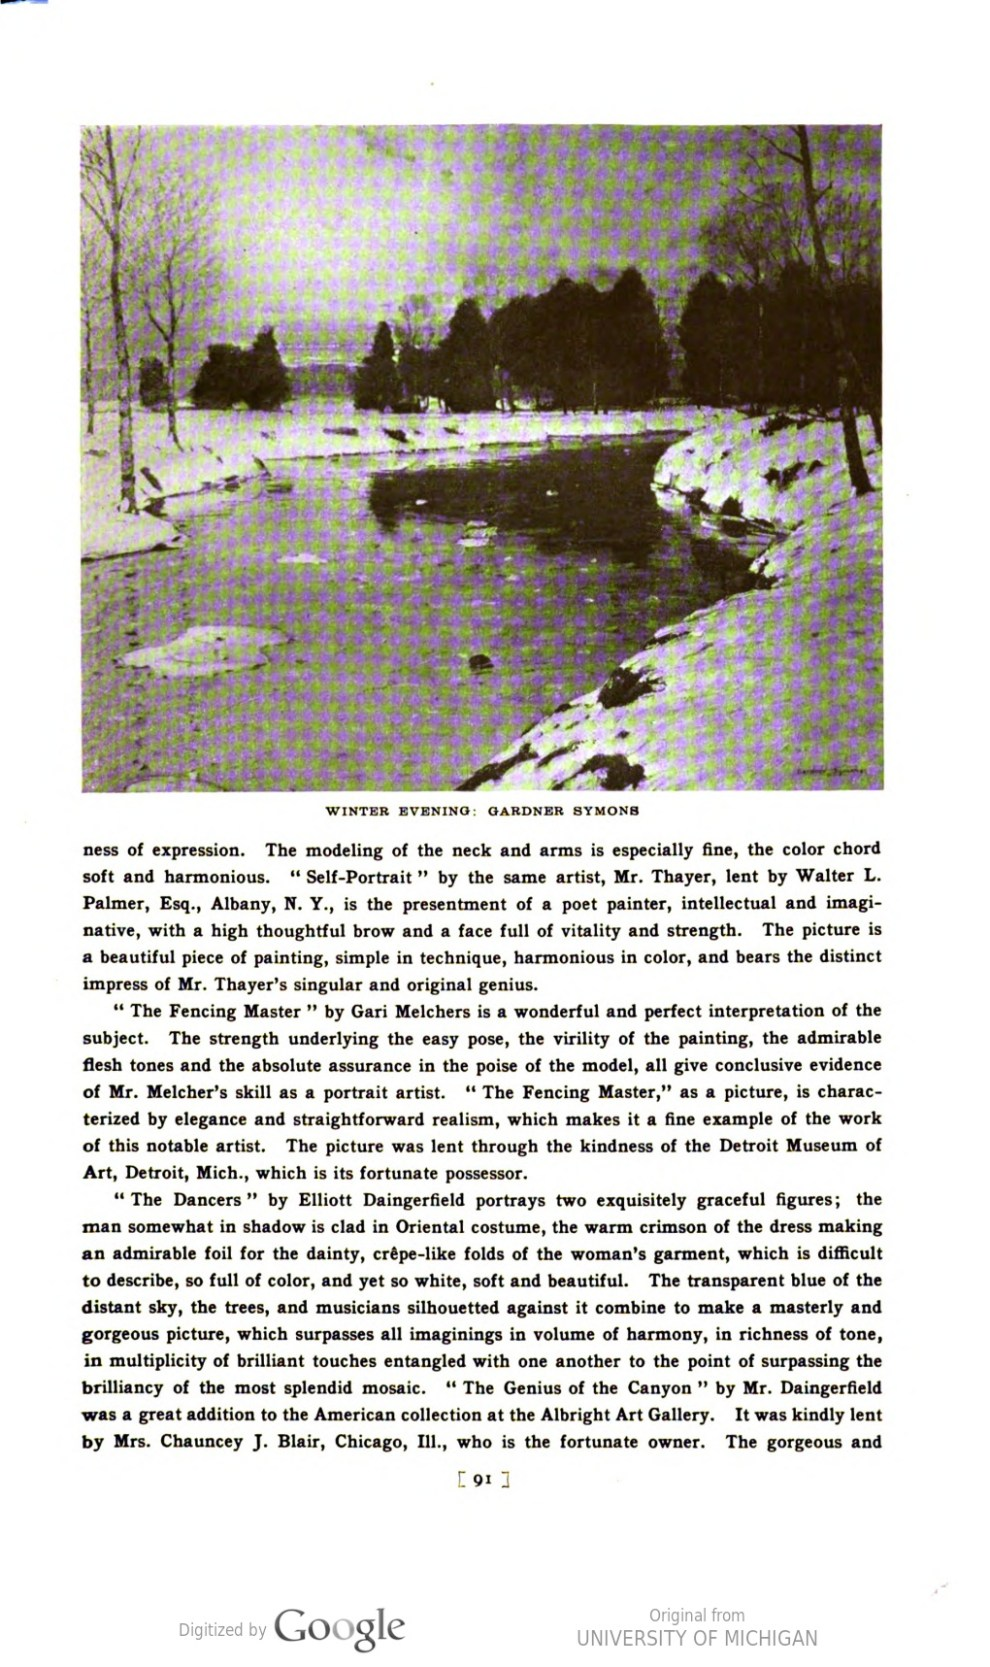 "Academy Notes, Buffalo Fine Arts Academy, Albright Art Gallery, Buffalo, NY, ""The Summer Exhibition of American Paintings at the Albright Art Gallery"", July, 1914, Volume 9, Number 3, page 83-107, not illustrated"